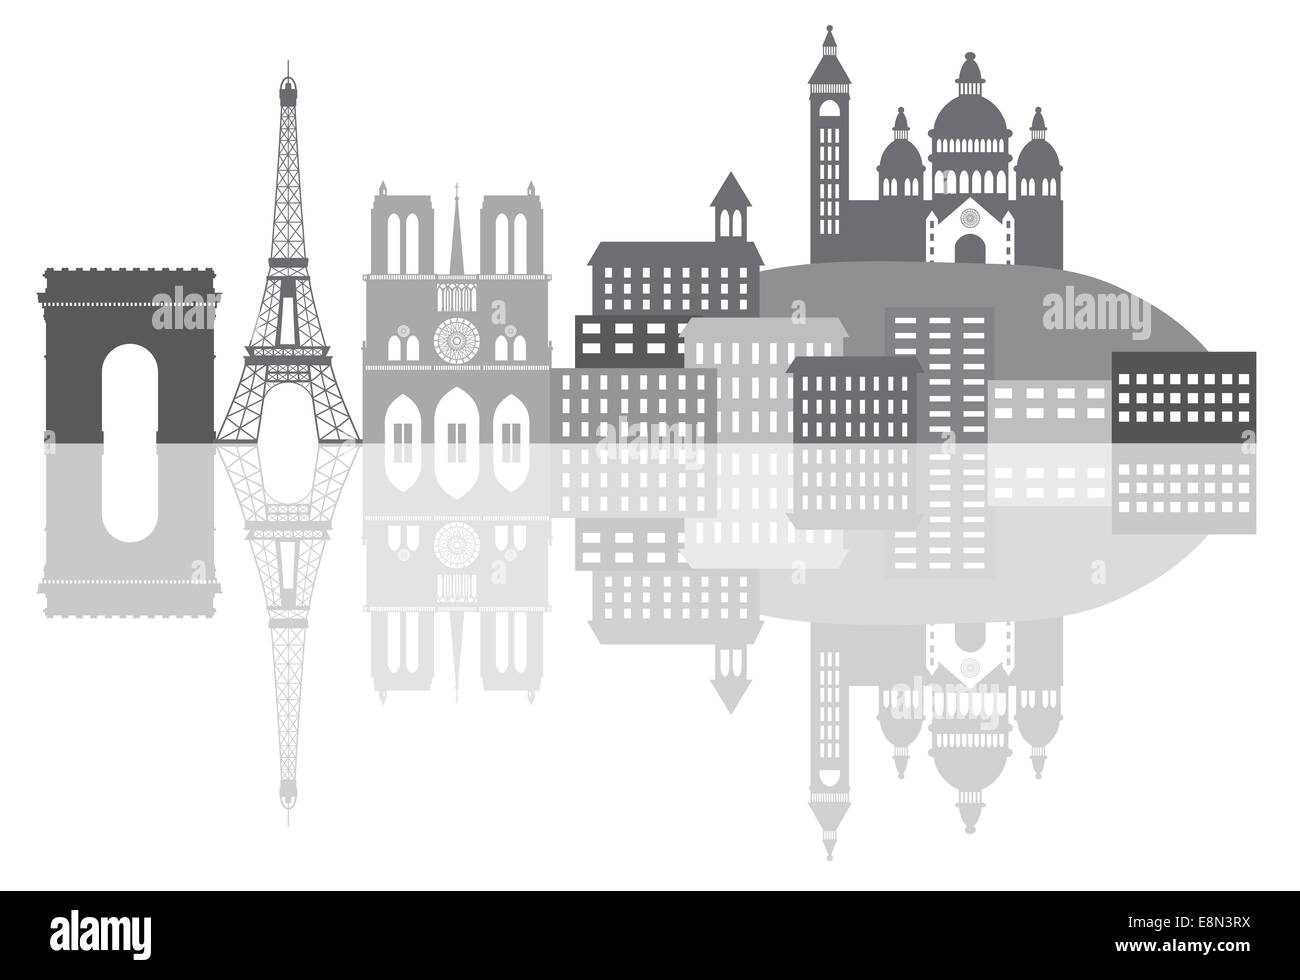 Paris France City Skyline Outline Silhouette Grayscale with Reflection Isolated on White Background Panorama Illustration - Stock Image